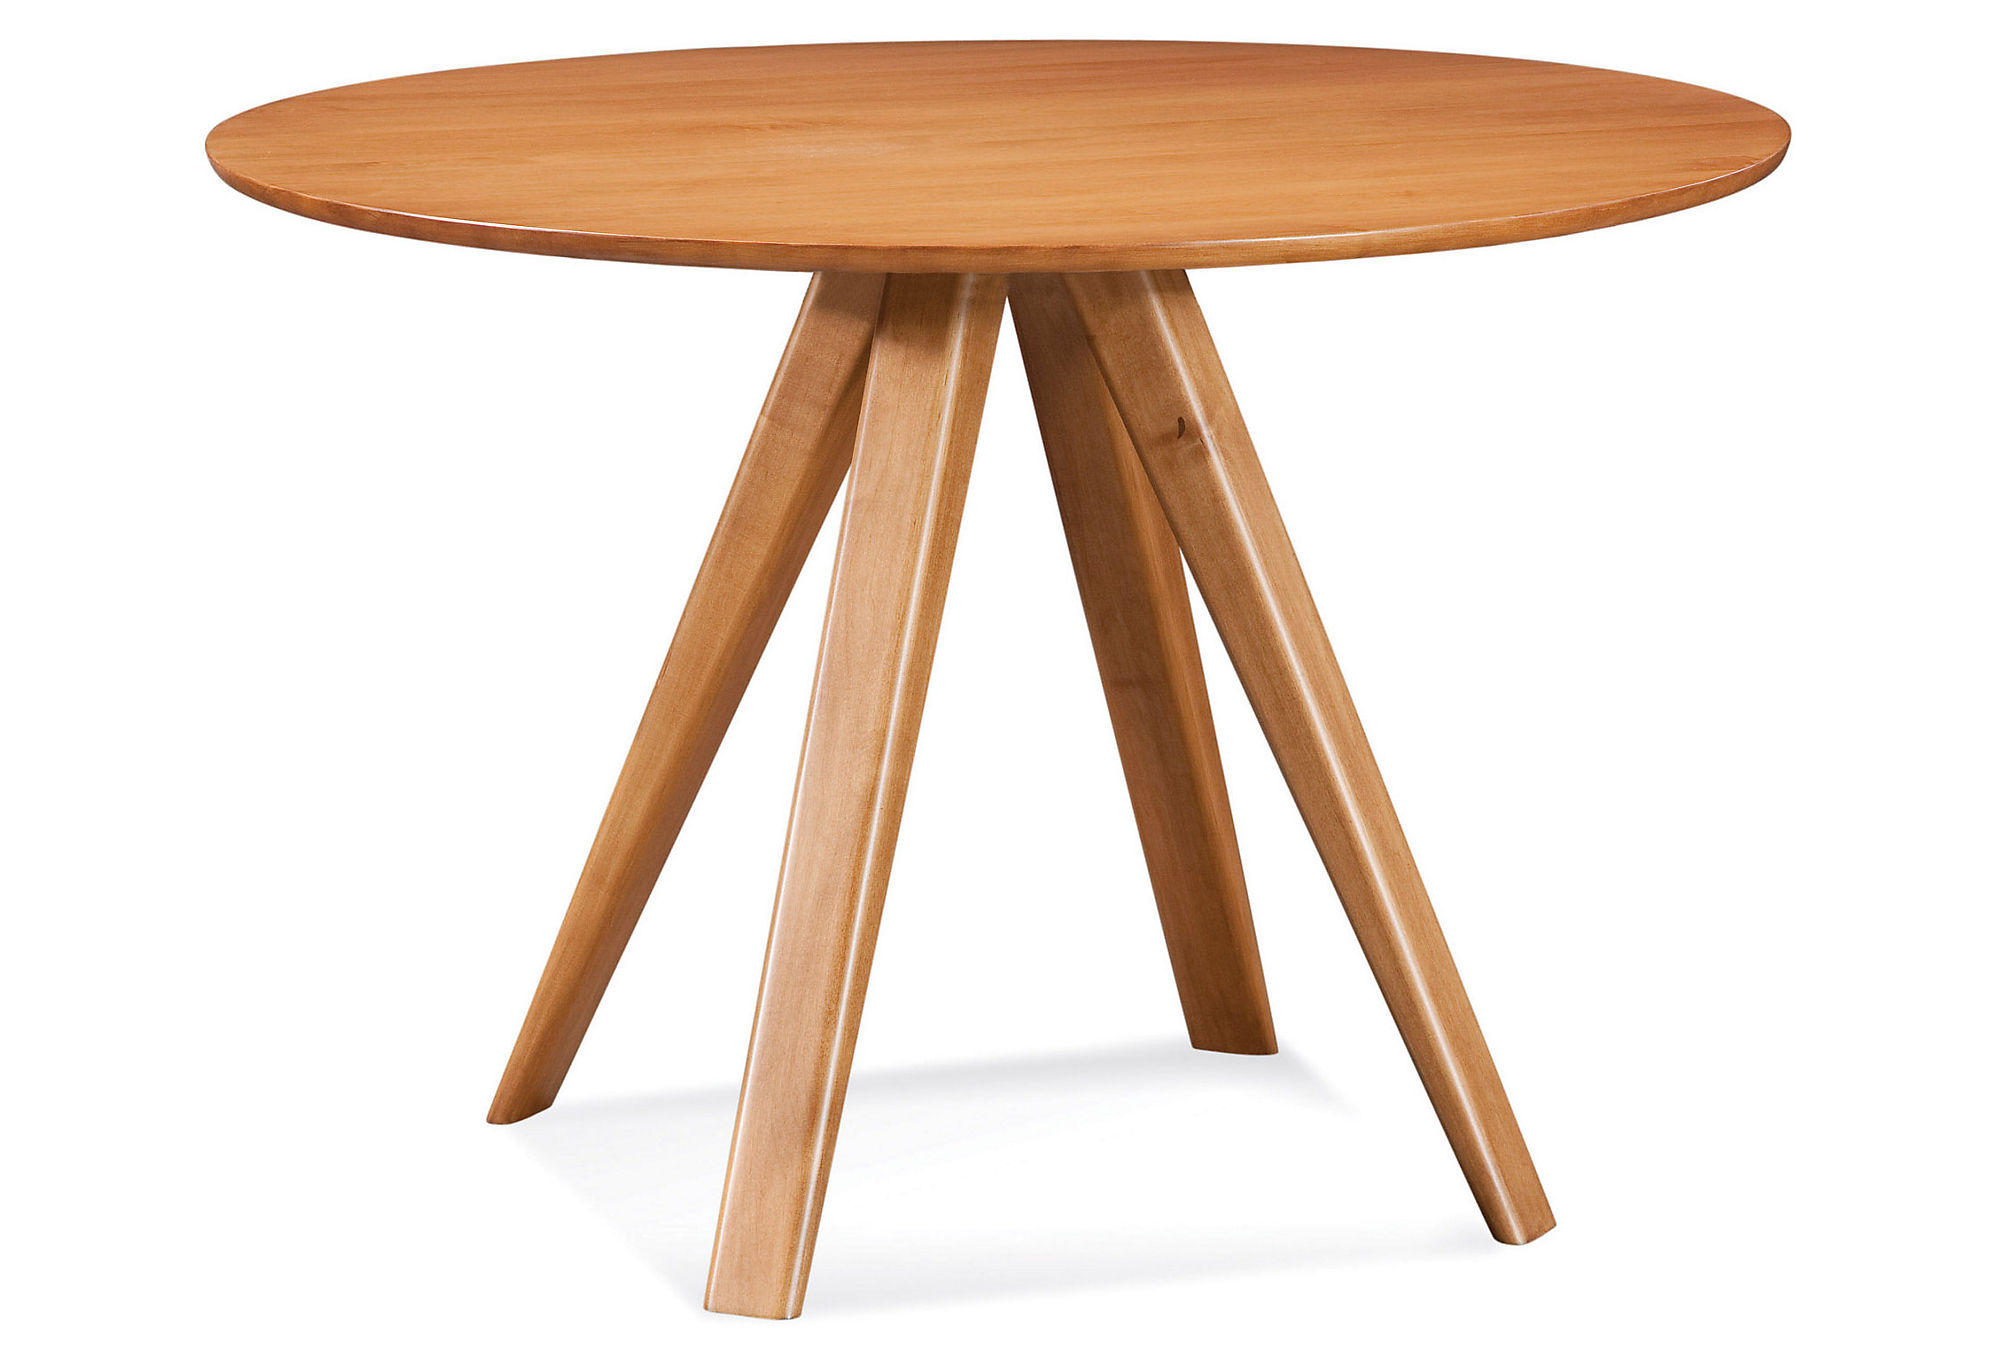 Avon Round Maple Dining Table Natural From One Kings Lane